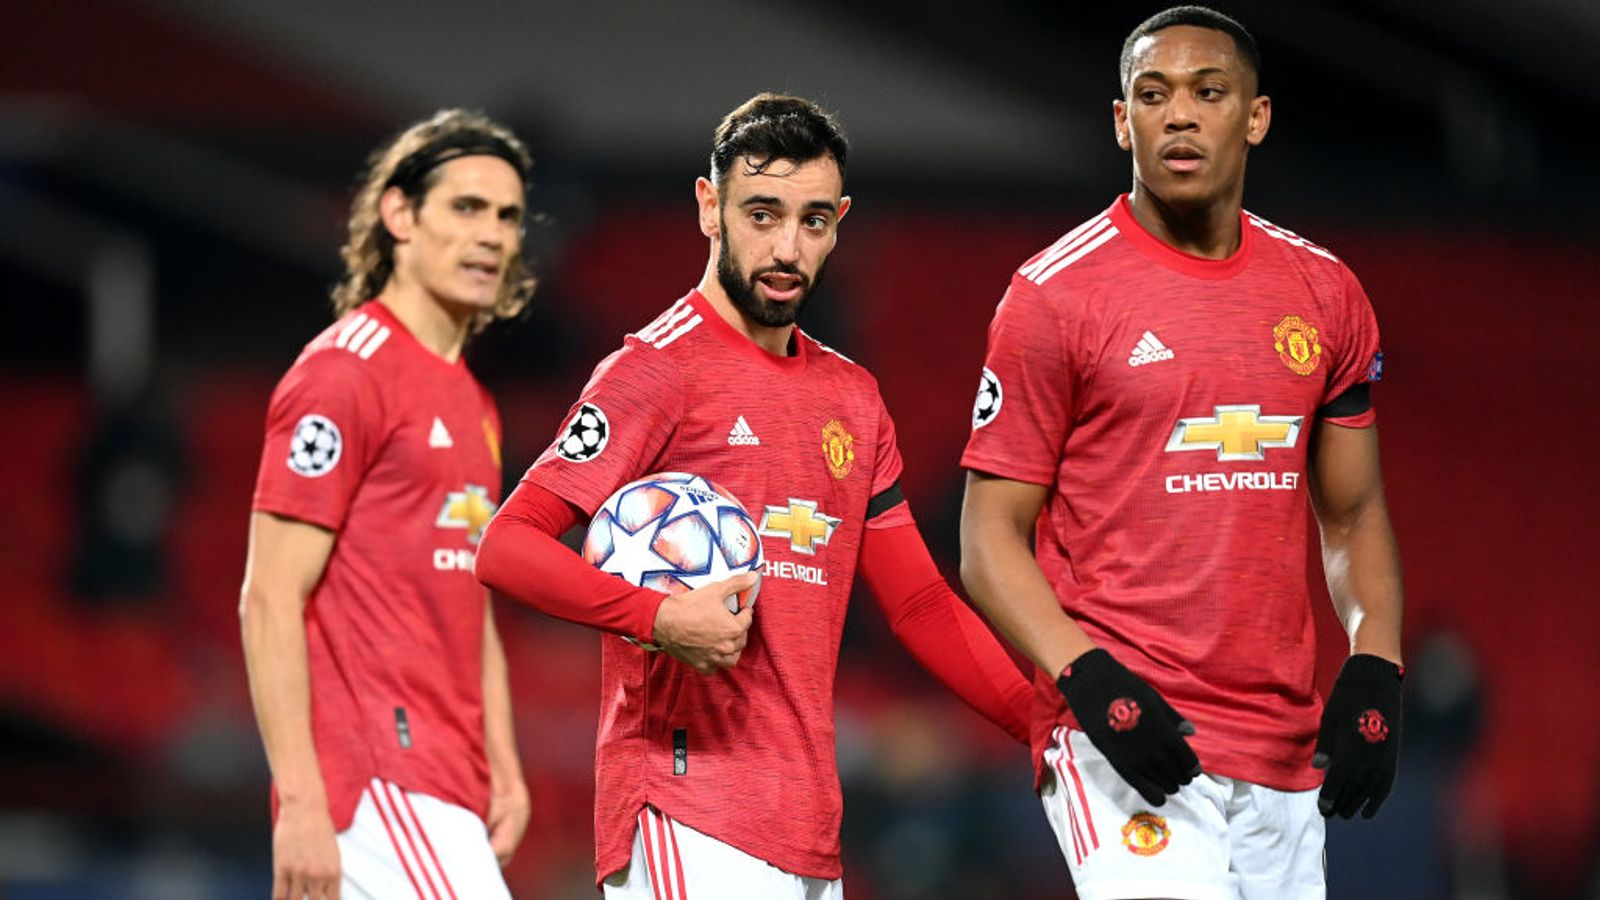 Bruno Fernandes relinquishes penalty - and hat-trick chance - in Man Utd win - Sky Sports